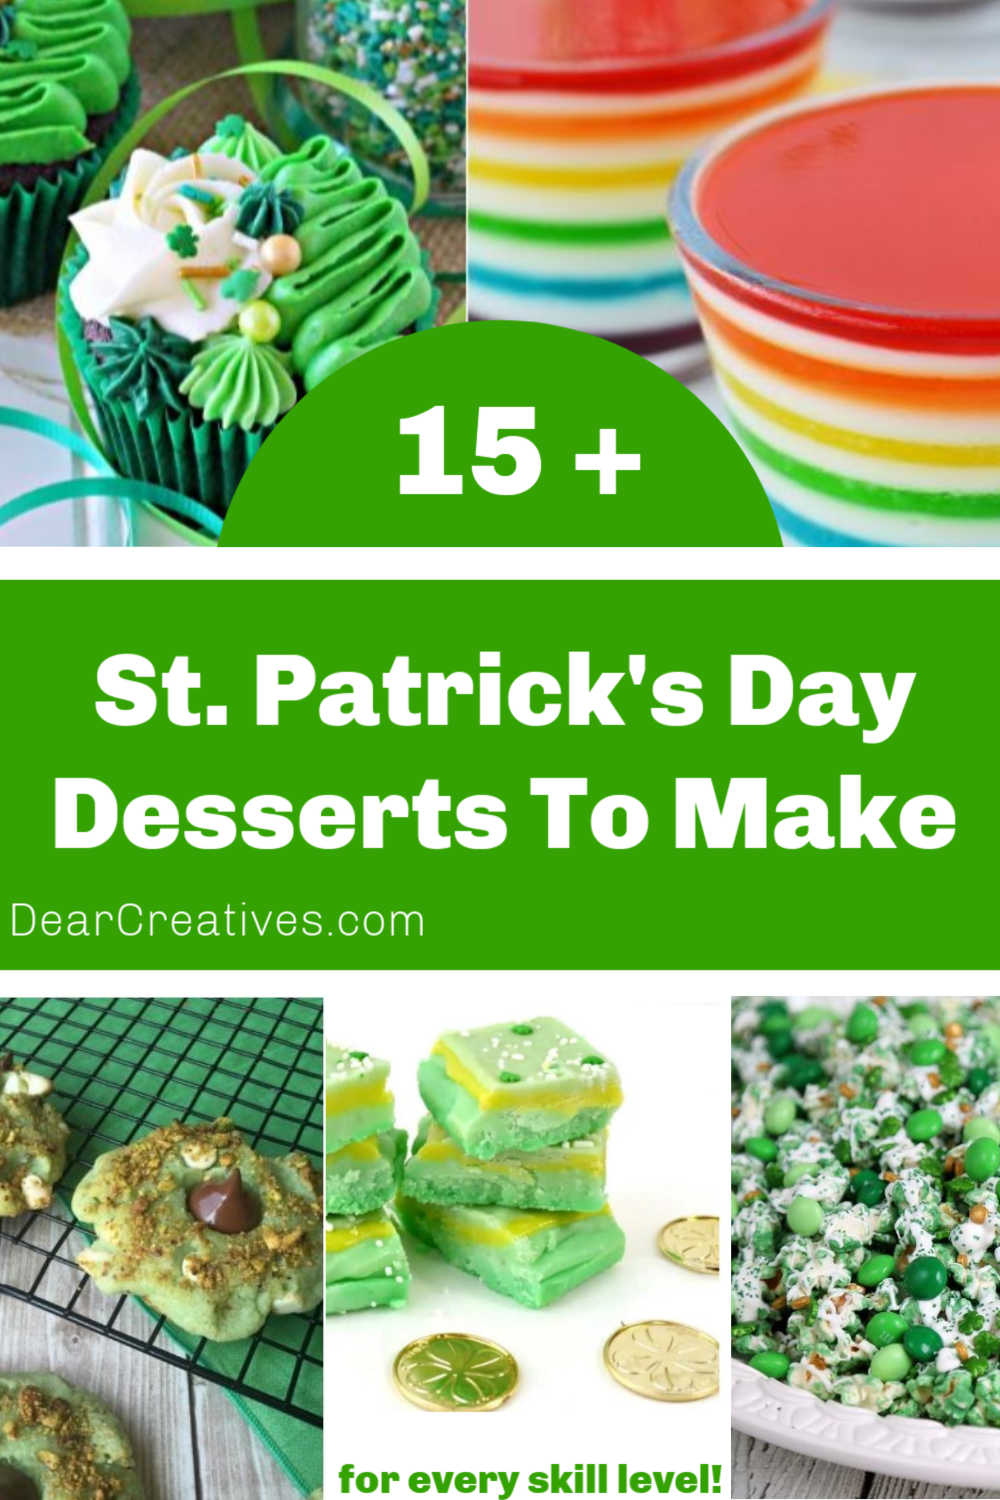 St. Patrick's Day Desserts To Make!